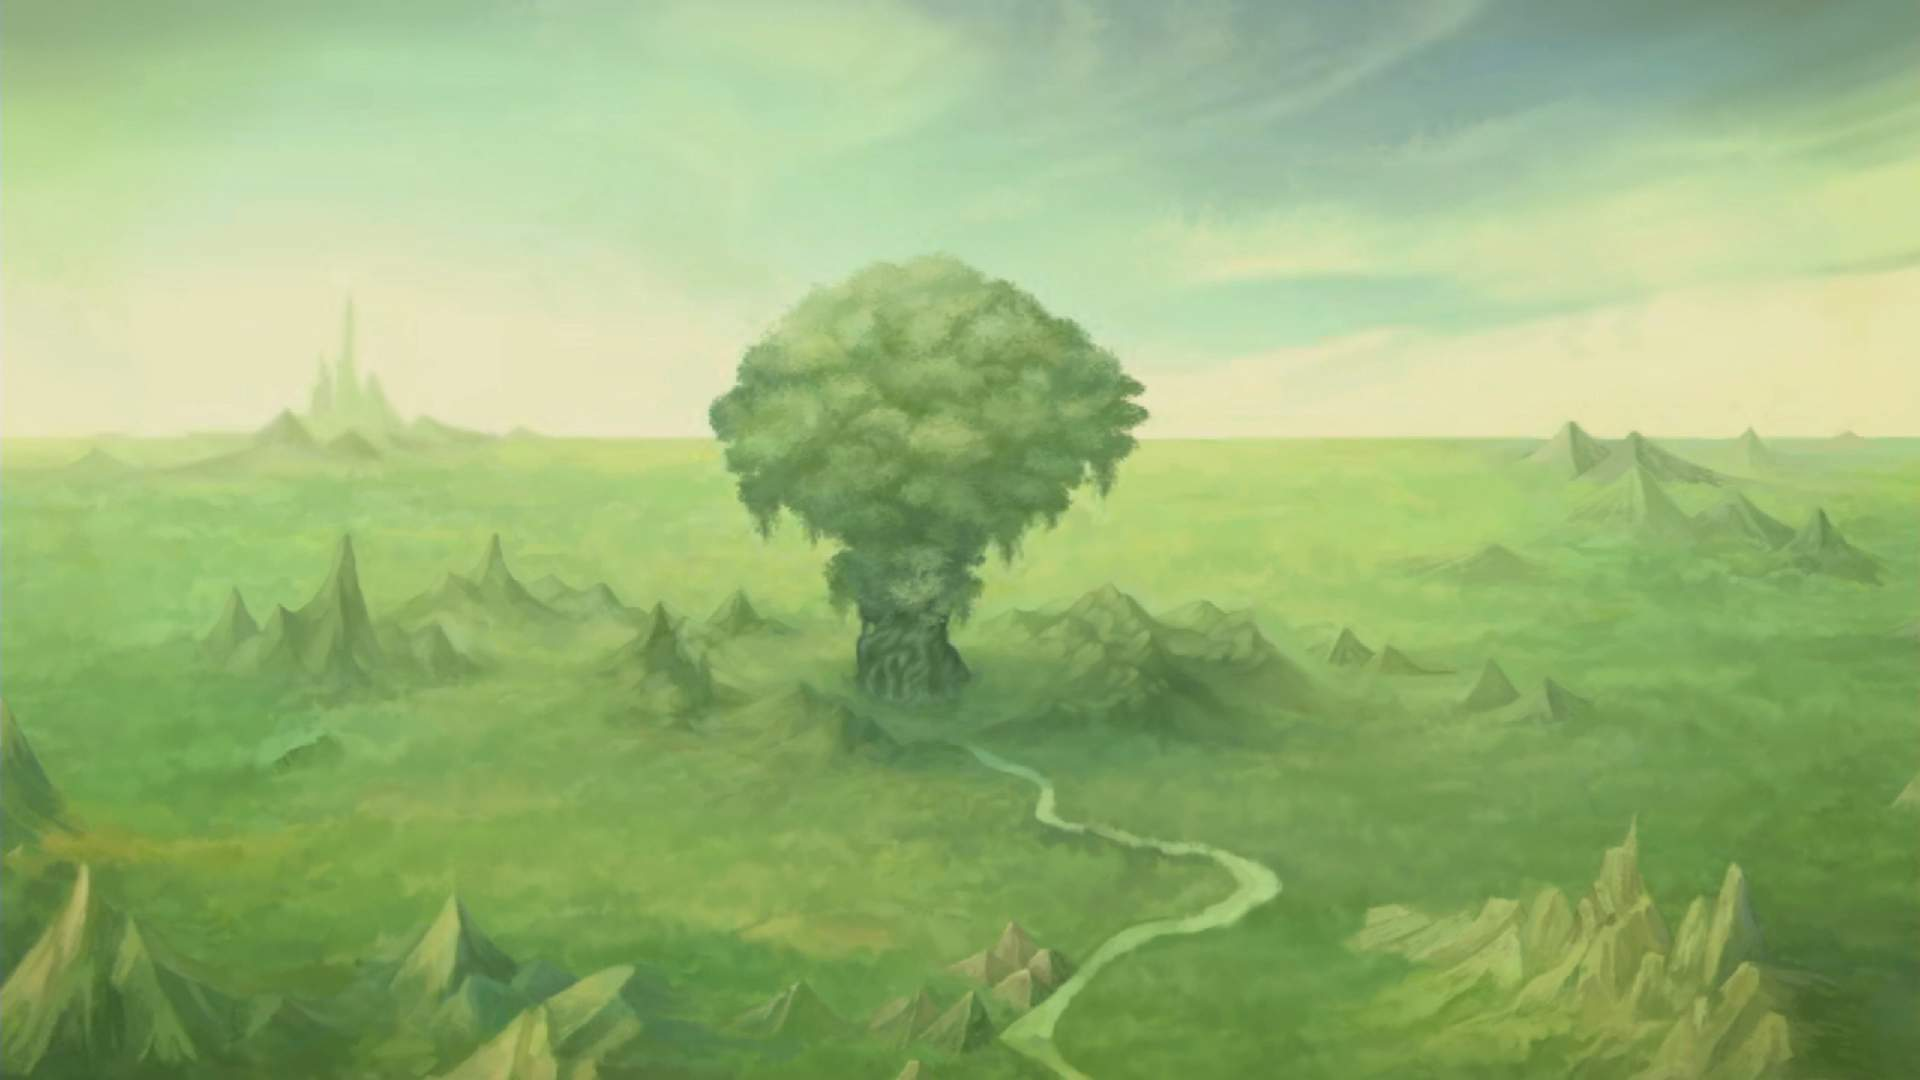 A far shot showing the Mana Tree in the centre of a green landscape.